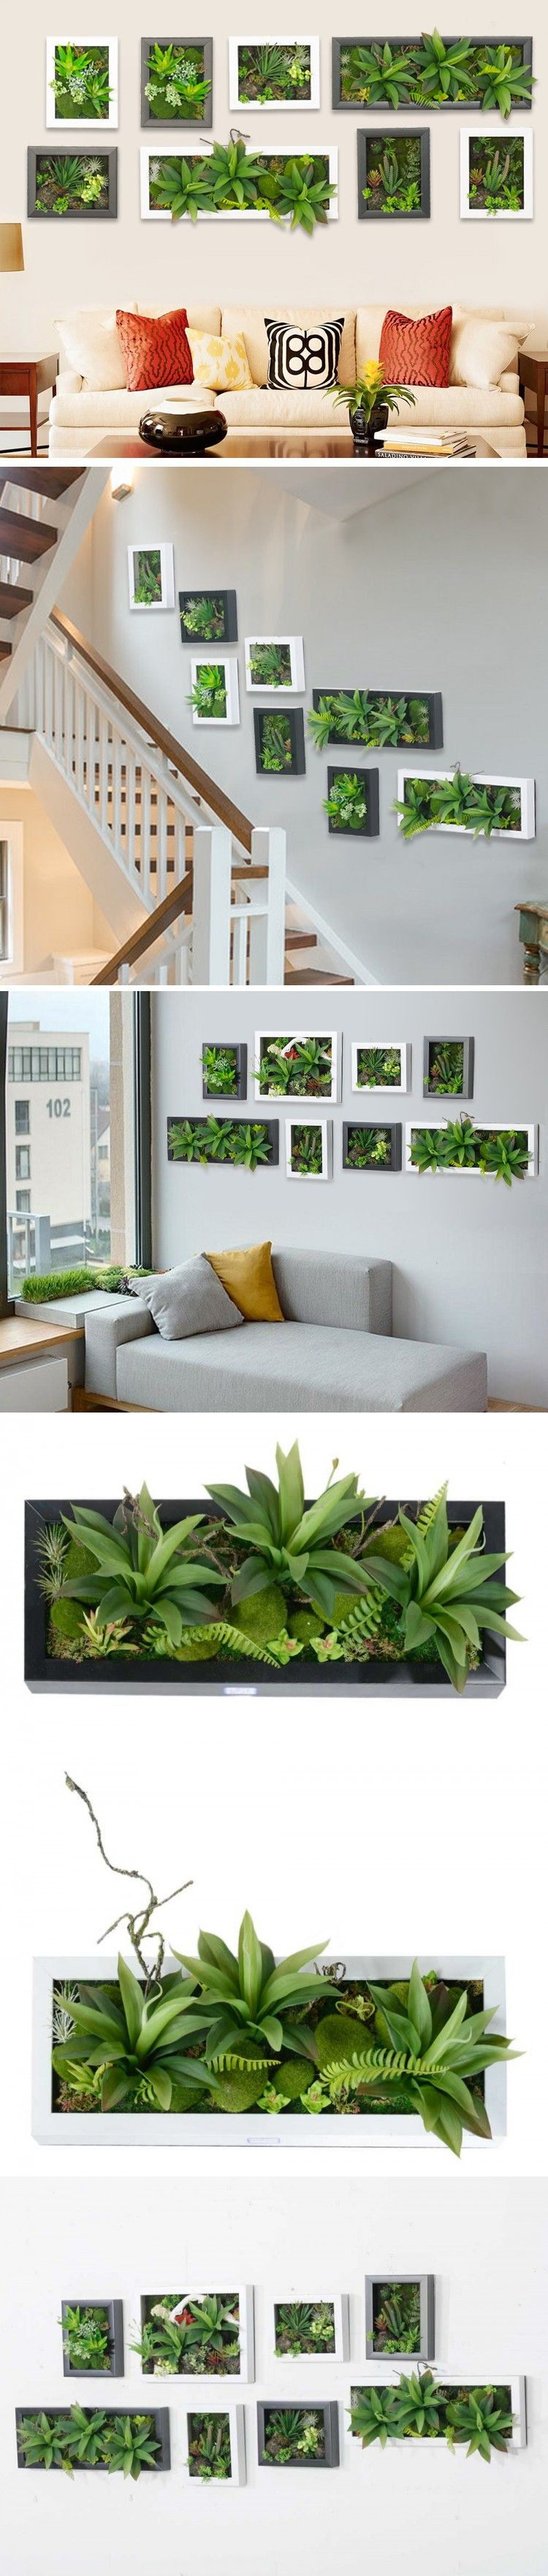 Sticker wall hanger - Hot 3d Artificial Potted Plants Home Decoration Nature Wall Hanger Palor Room Decorative Frame Simulation Wall Sticker